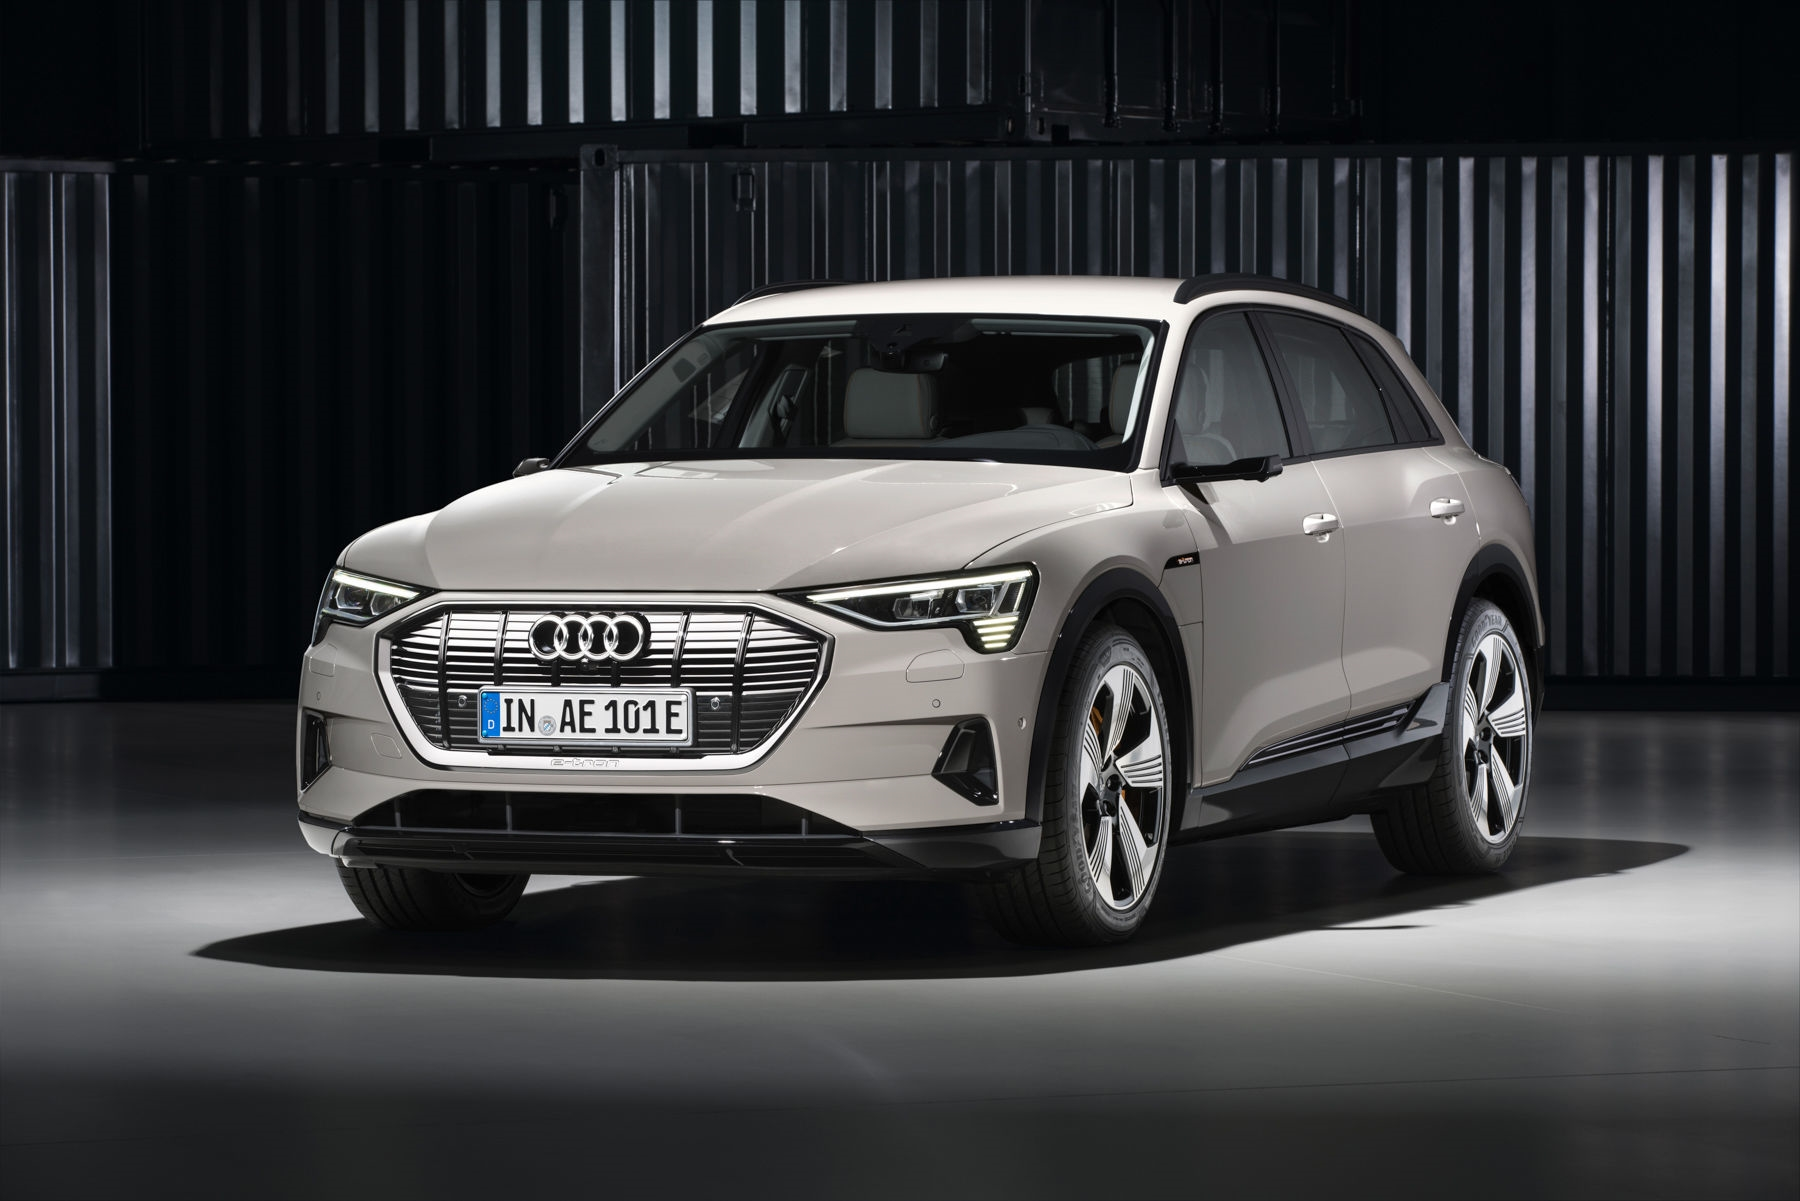 Audi rips the camouflage off its E-Tron electric SUV | DeviceDaily.com